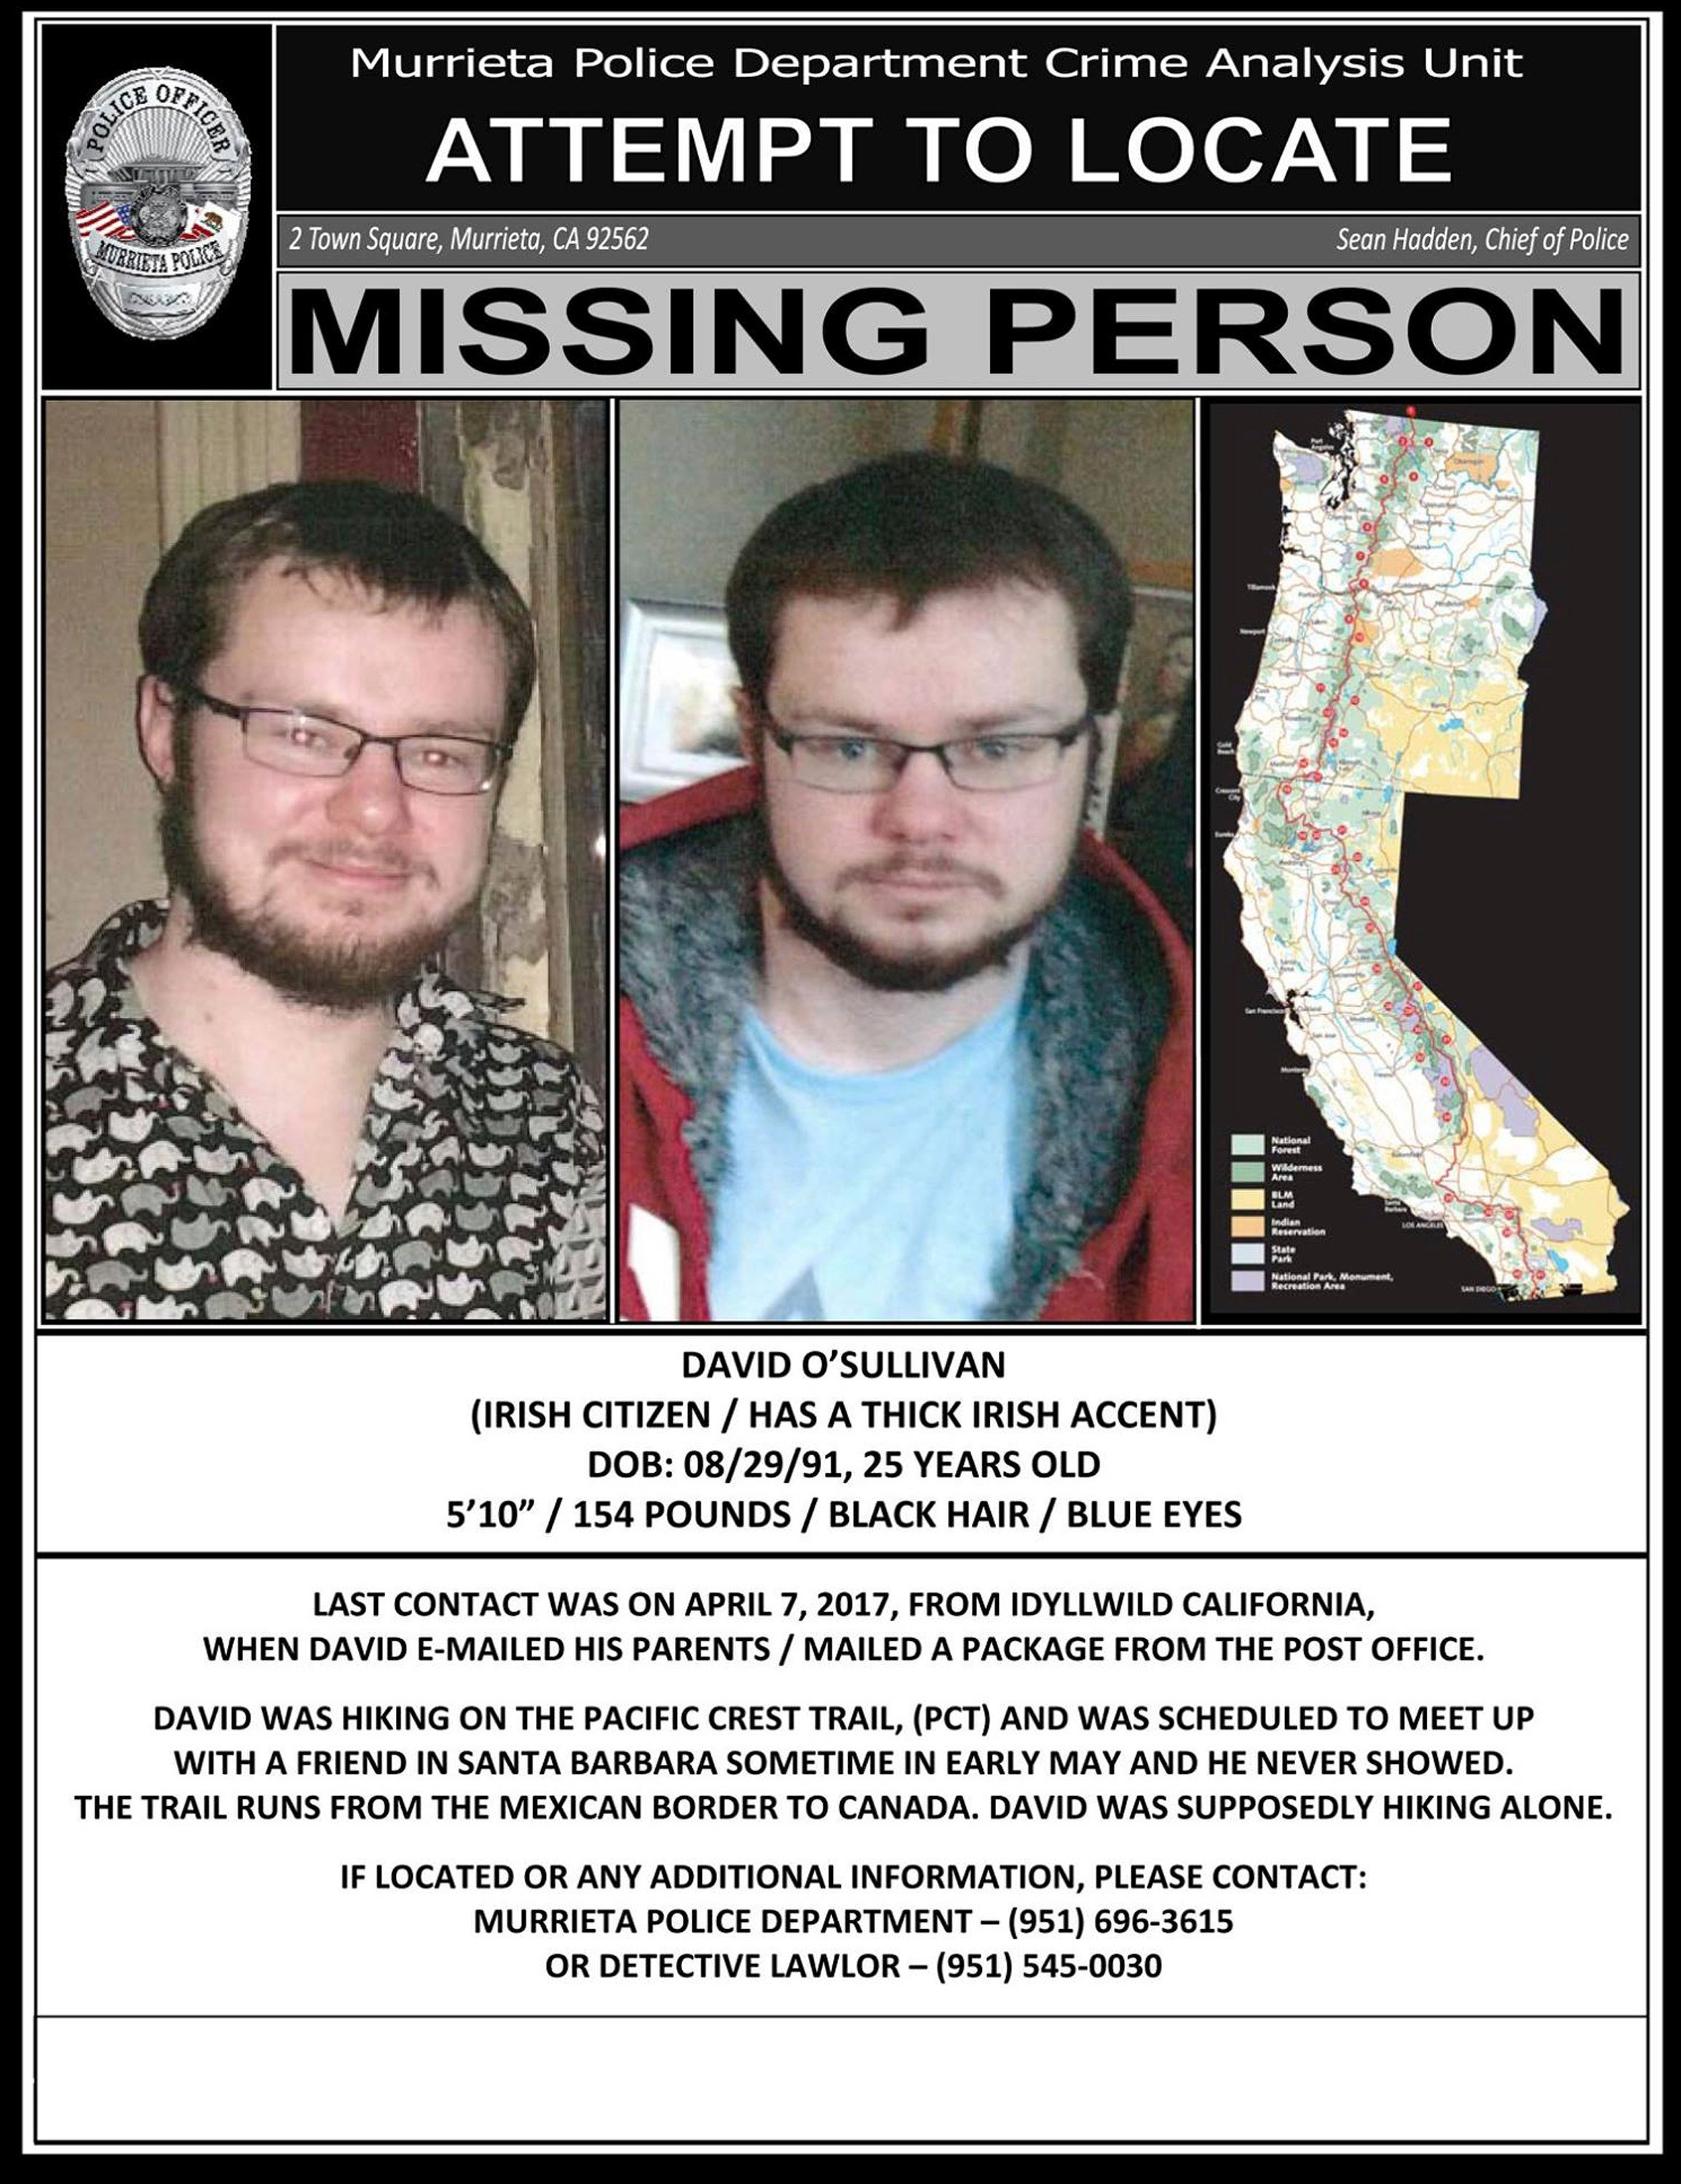 This undated Missing Person poster, distributed by the Murrieta, Calif., Police Department, shows photos and information about missing Irish hiker David O'Sullivan as they seek the public's help in locating him.  (Murrieta Police Department via AP)